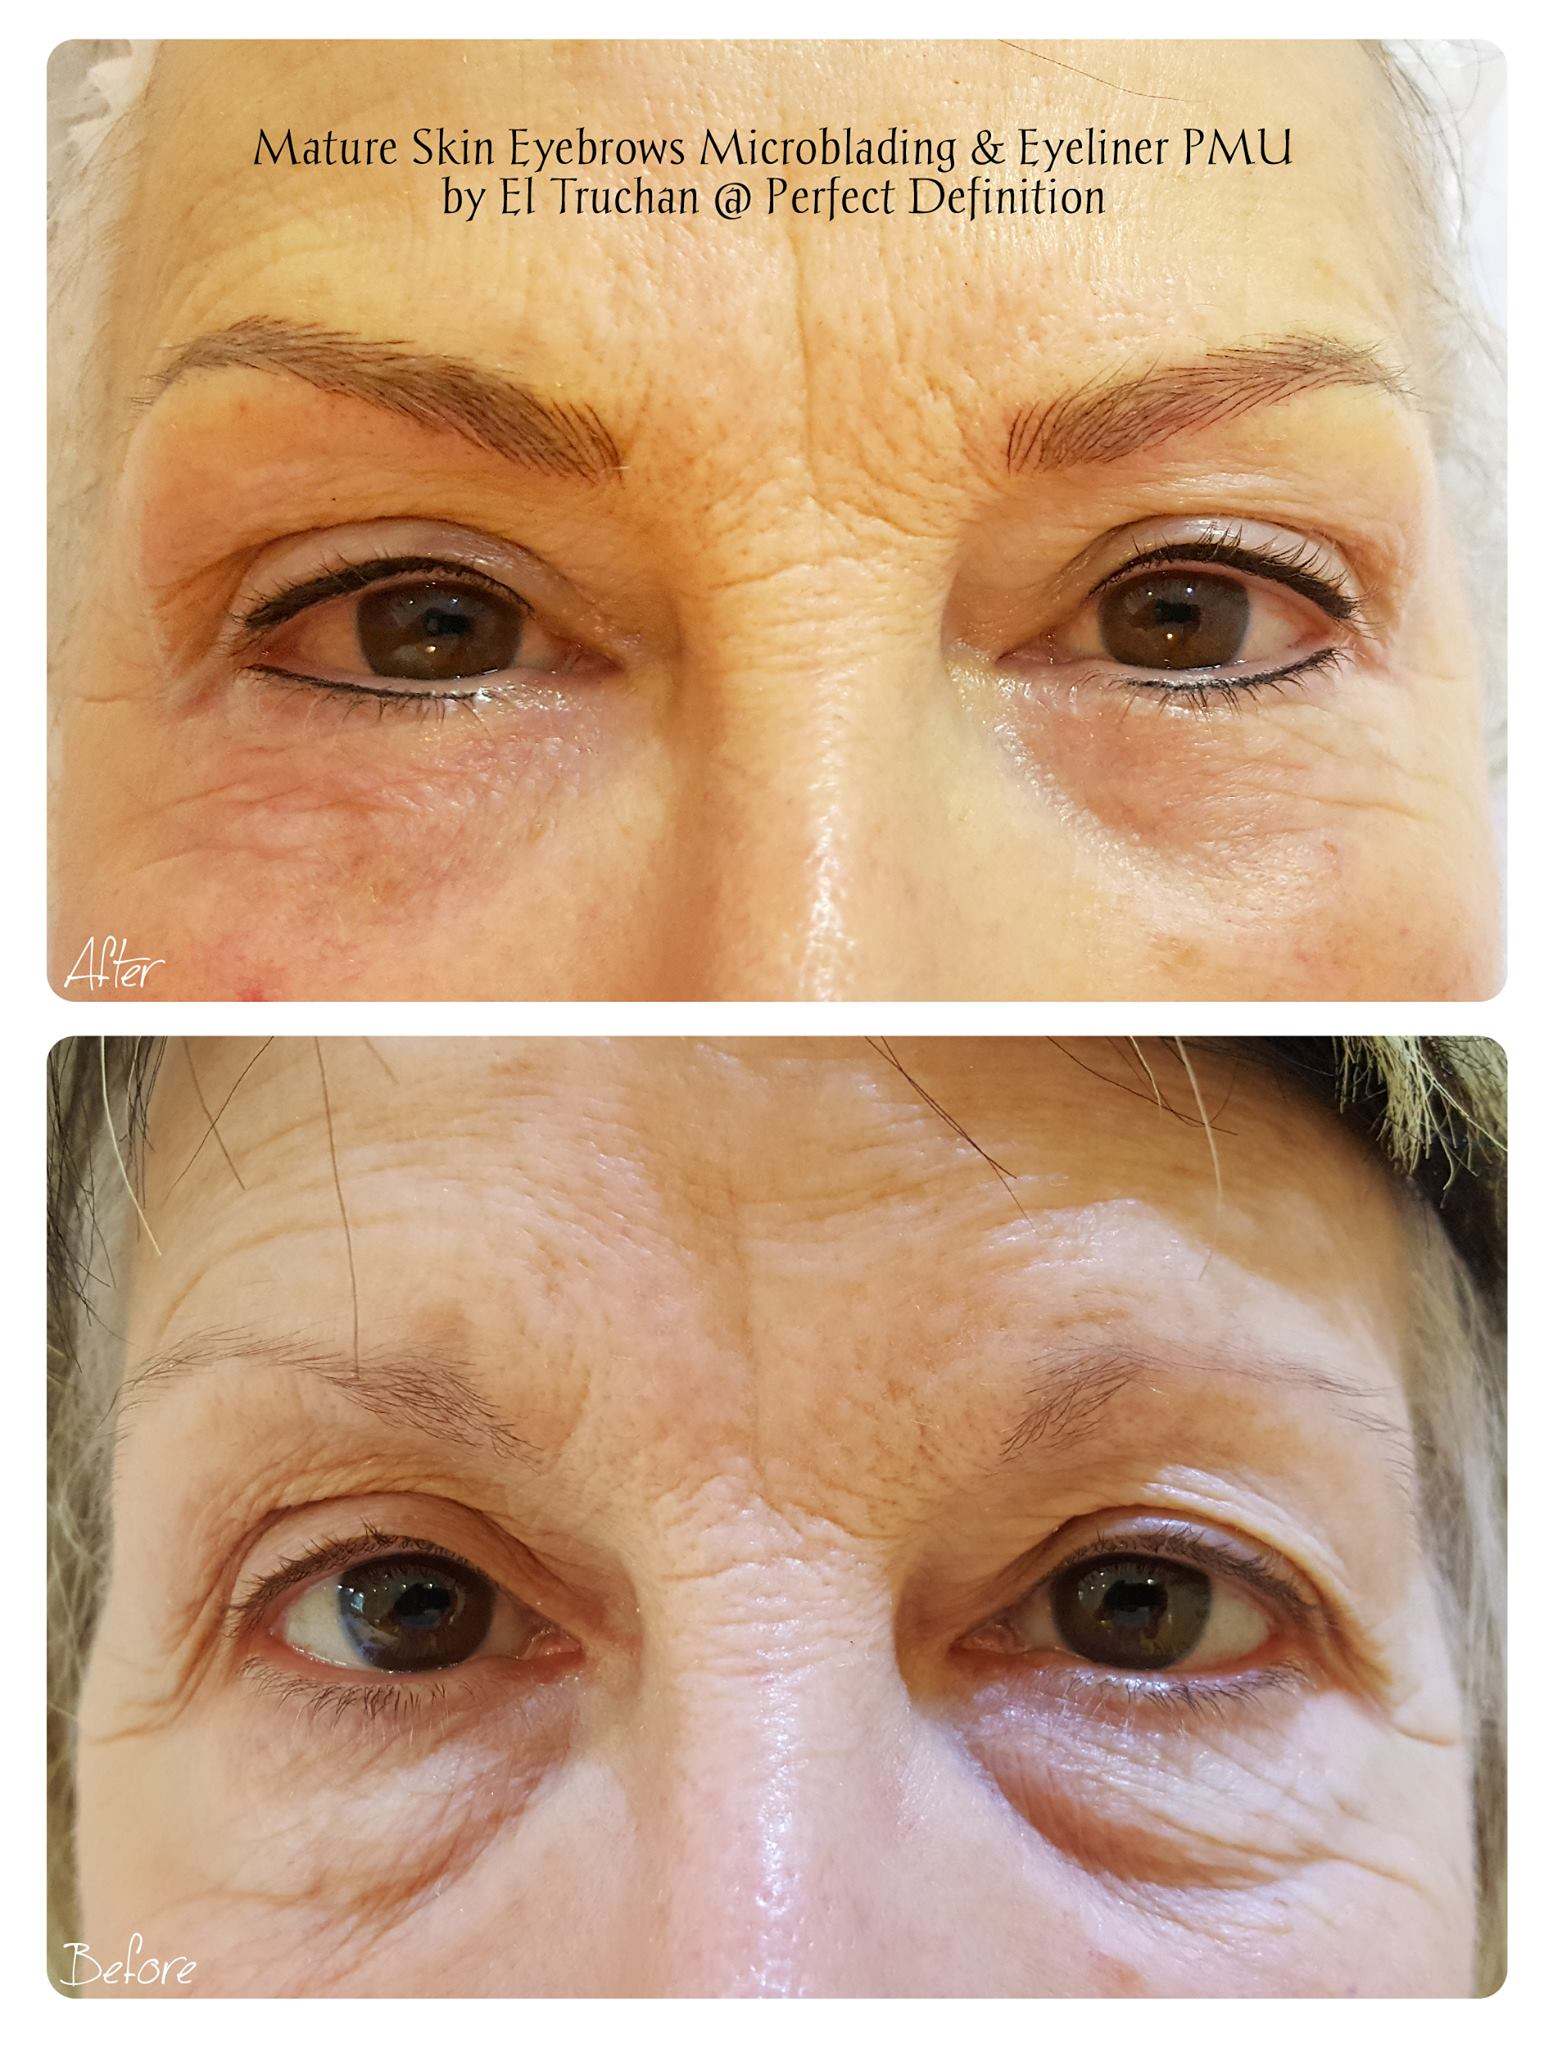 Mature Skin Eyebrows Microblading & Eyeliner